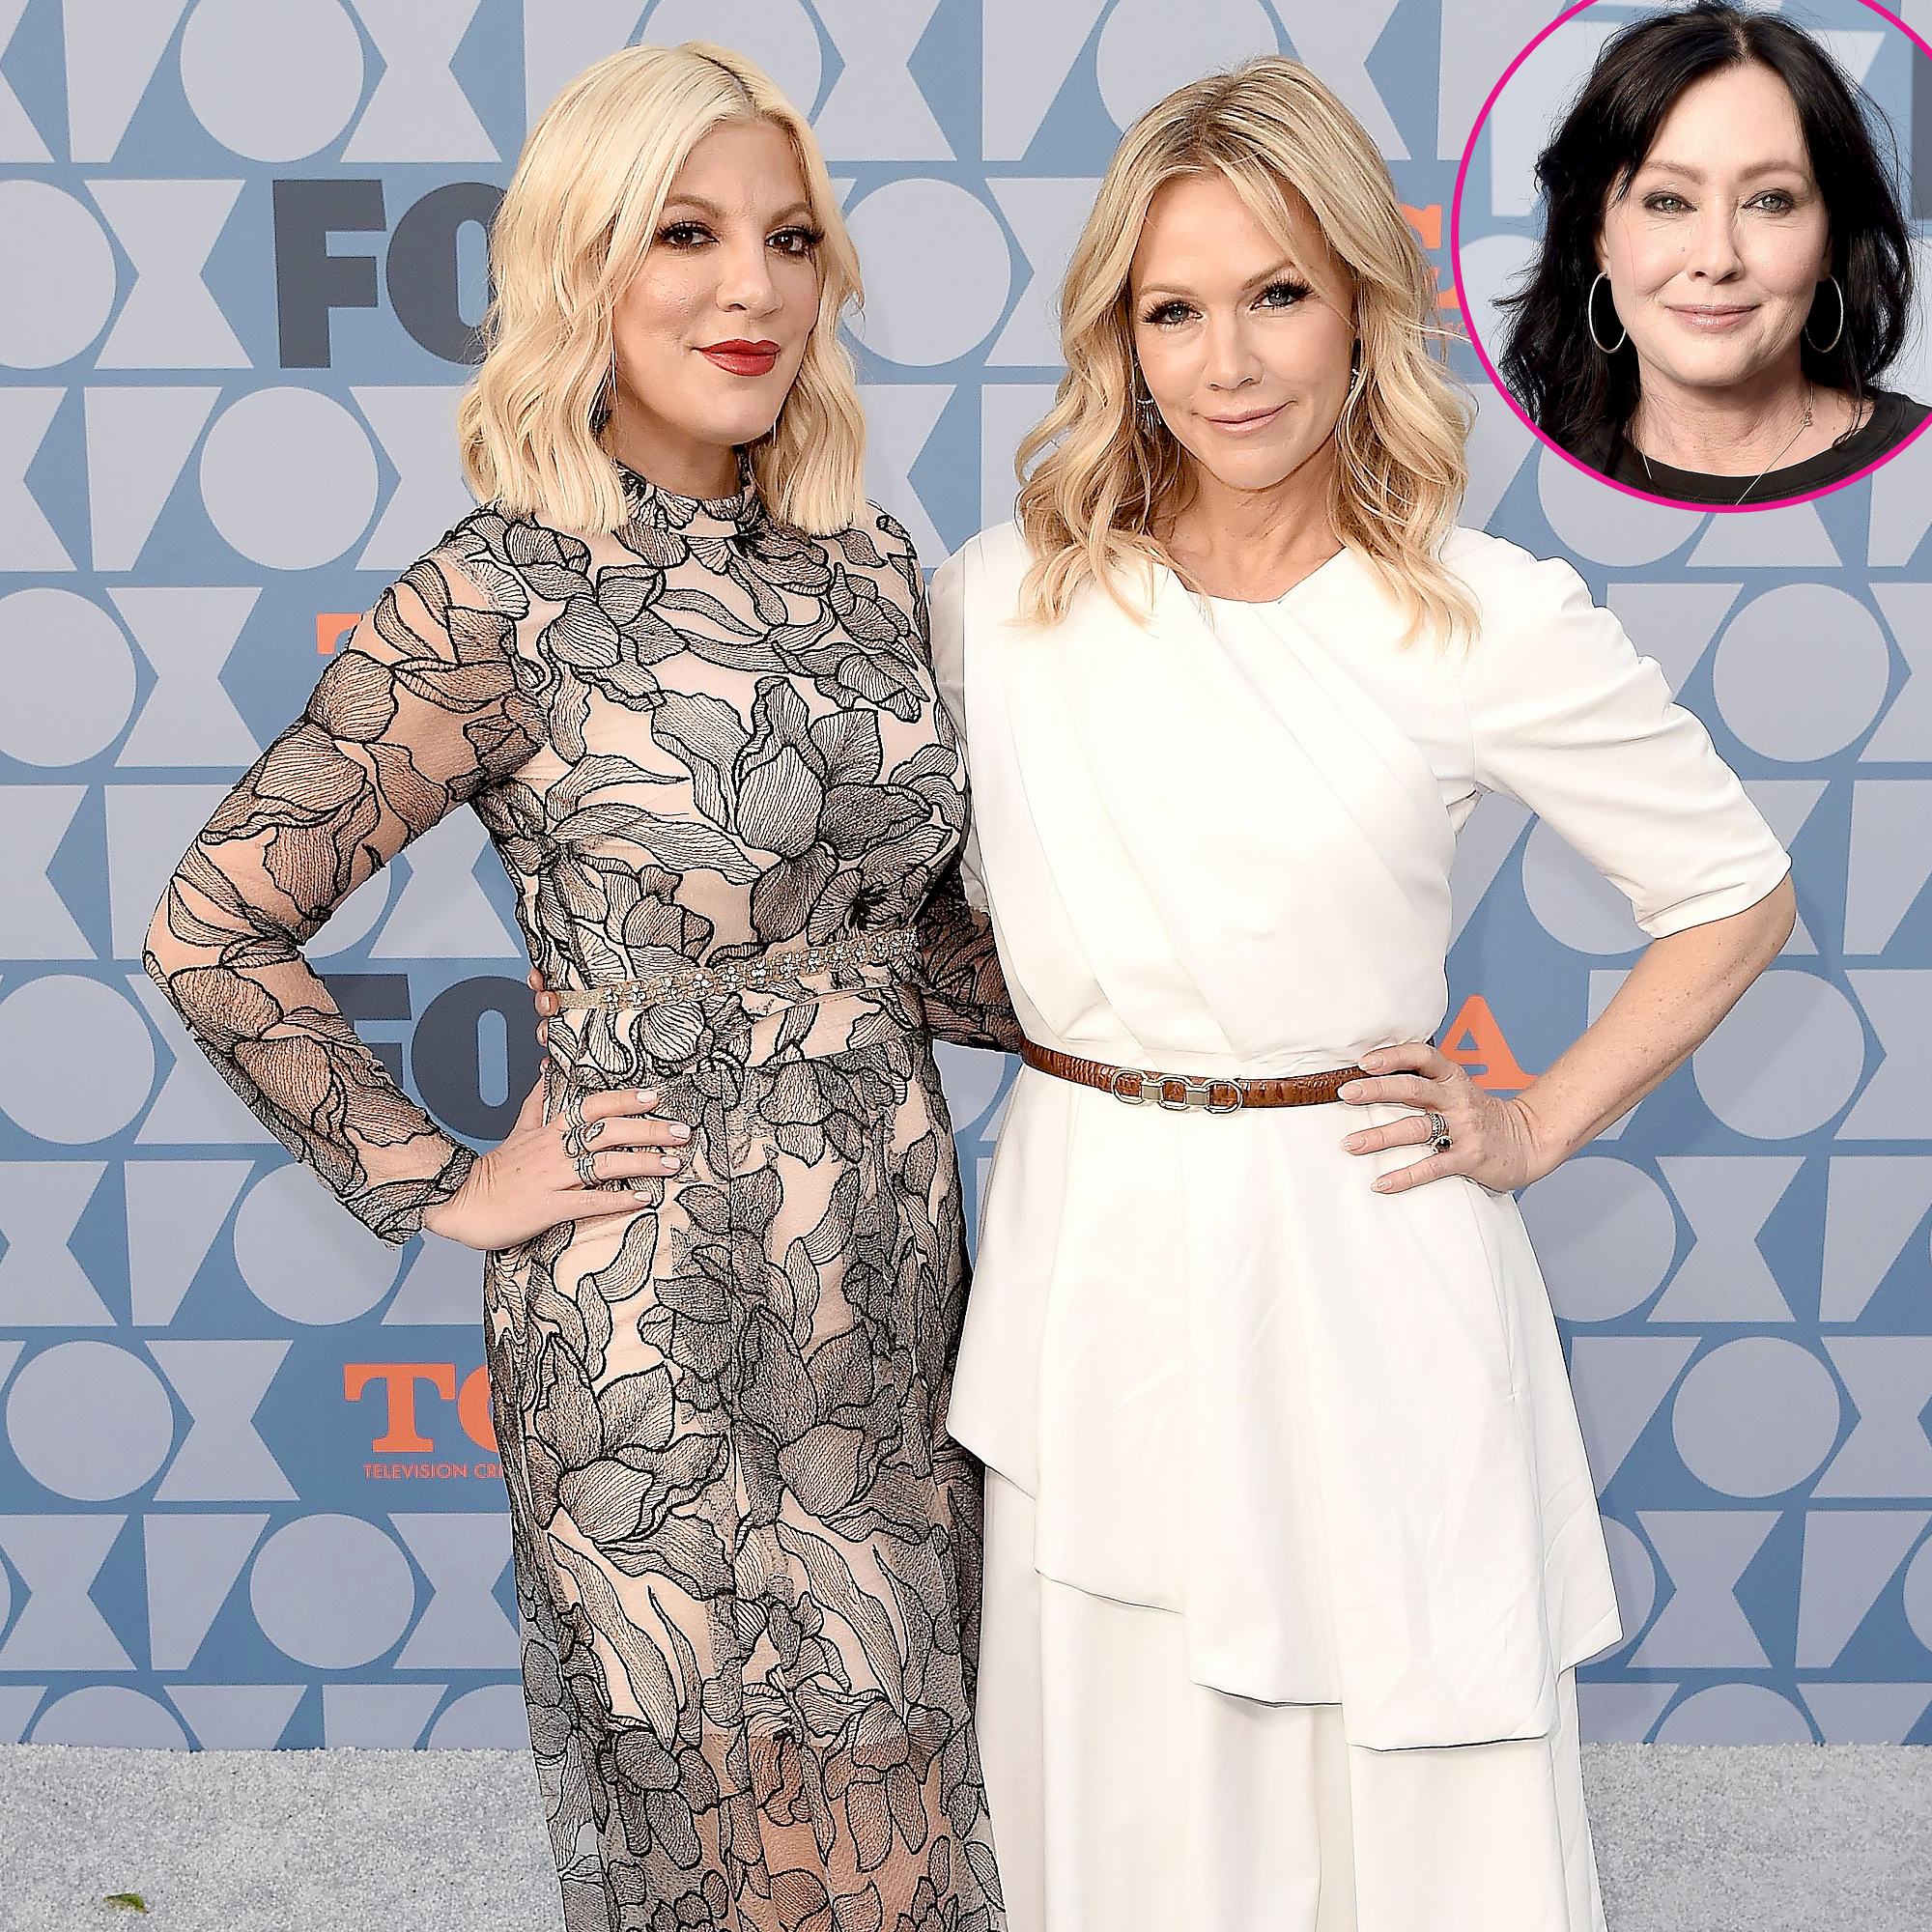 Tori-Spelling-and-Jennie-Garth-Explain-Shannen-Doherty's-Divide